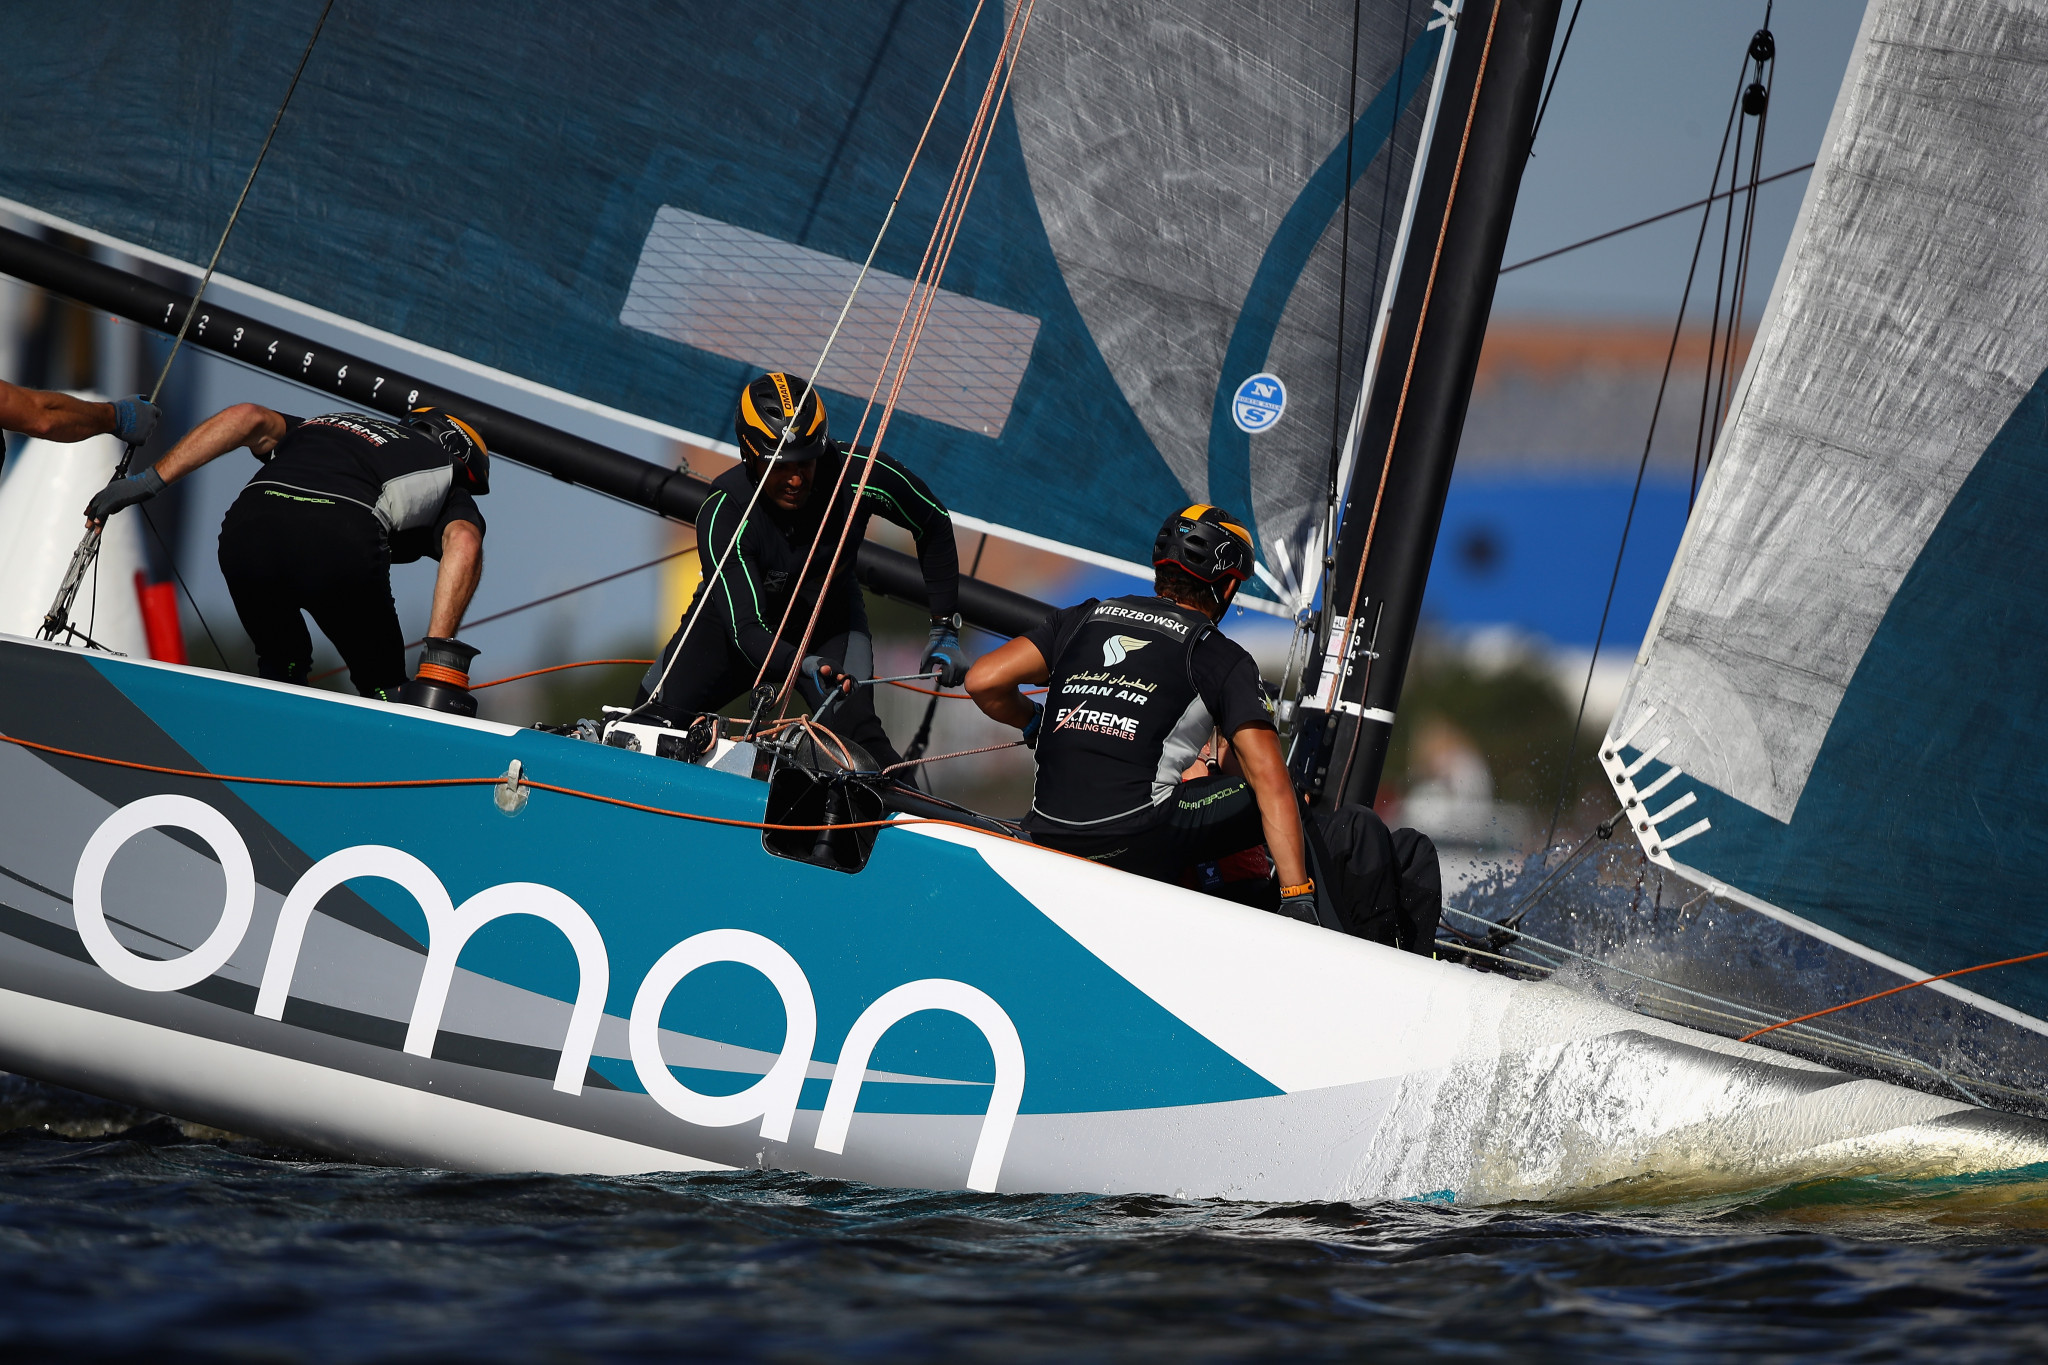 Oman to host 50th edition of Youth Sailing World Championships five years after withdrawal